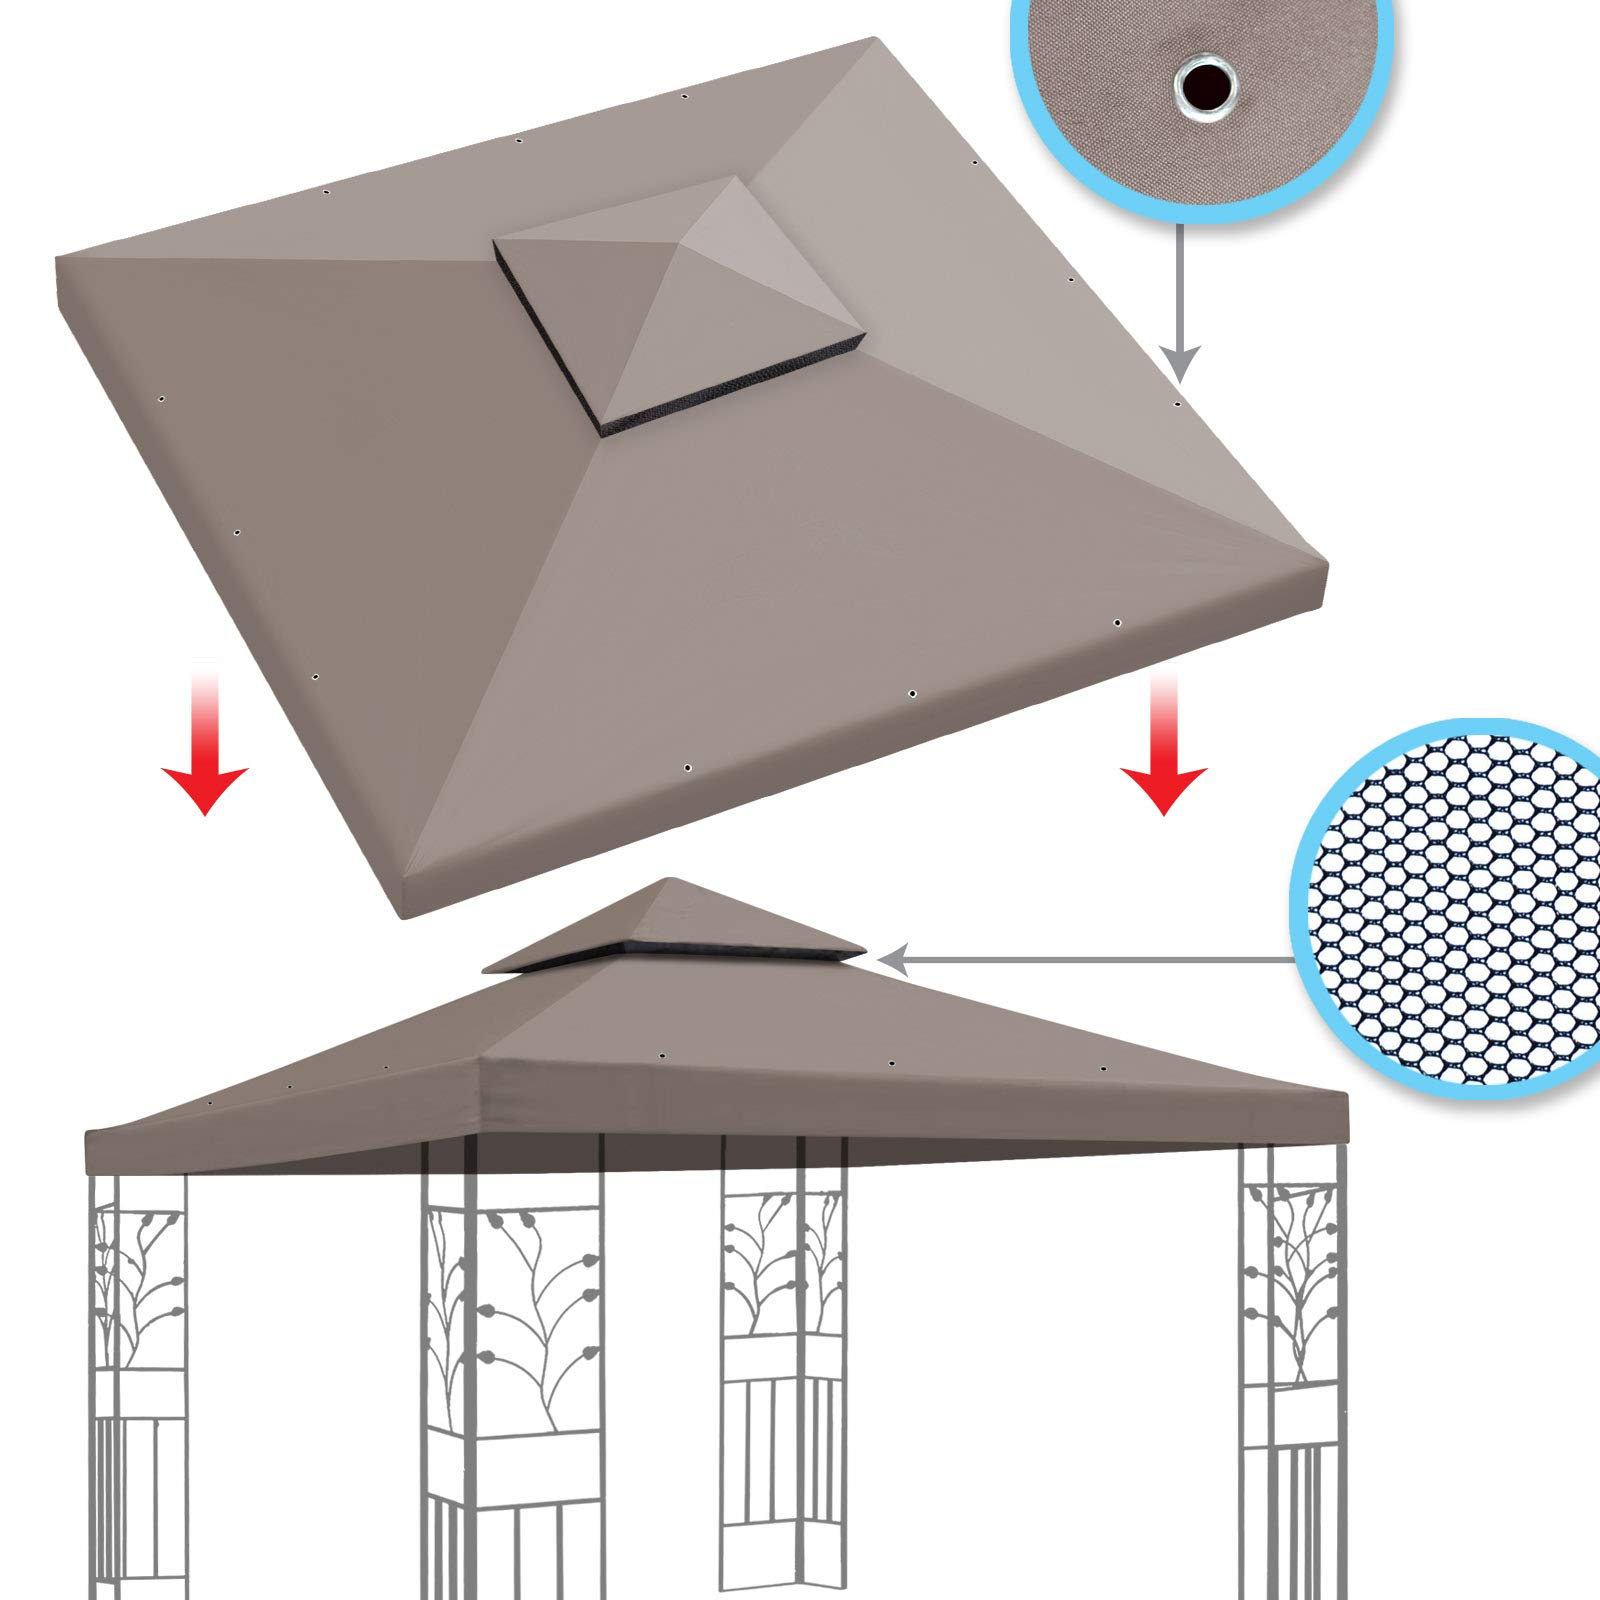 BenefitUSA Replacement Canopy Top Cover for 10'X10' Gazebo Polyester Double Tiers for Outdoor Garden Patio Pavilion Sunshade (Taupe)